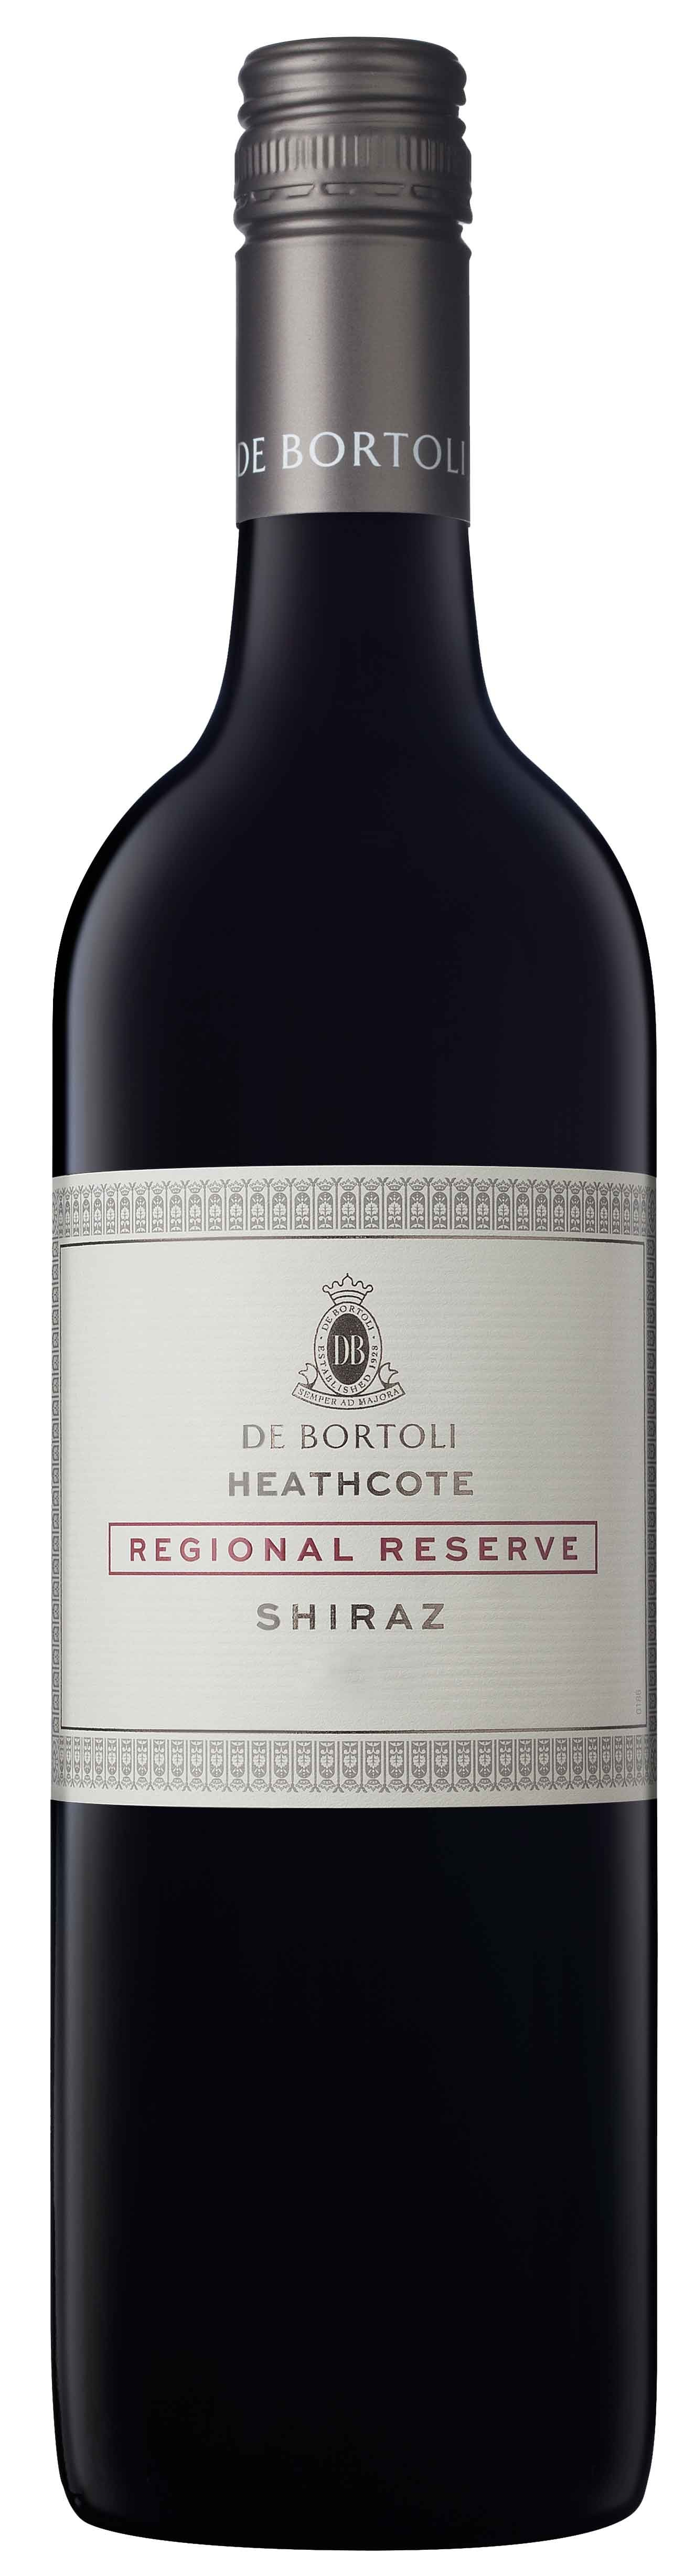 Buy De Bortoli Regional Reserve Heathcote Shiraz 2017 at herculeswines.co.uk